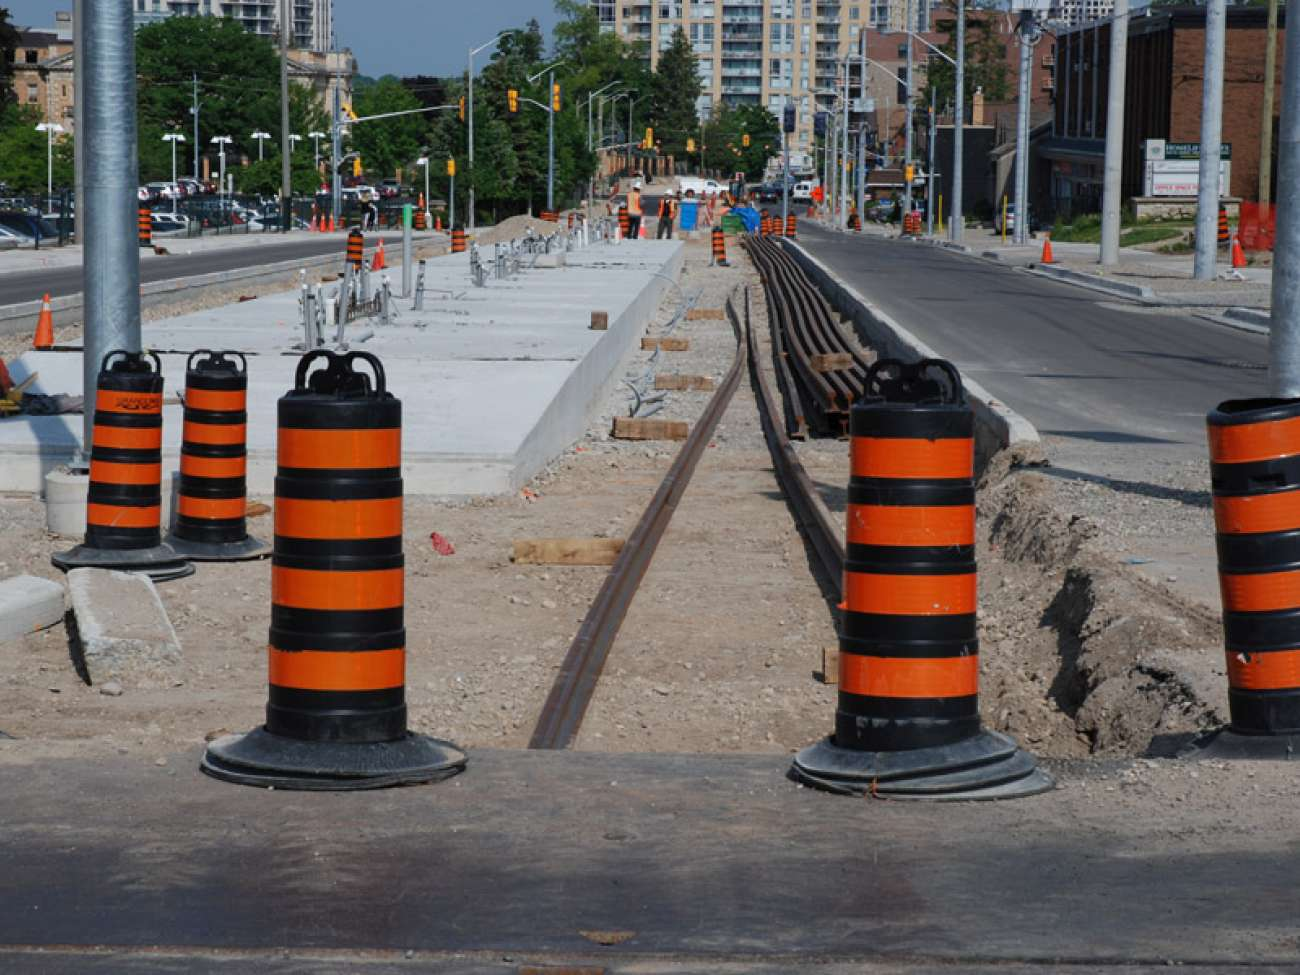 Looking west along King Street at the new GRH ION stop